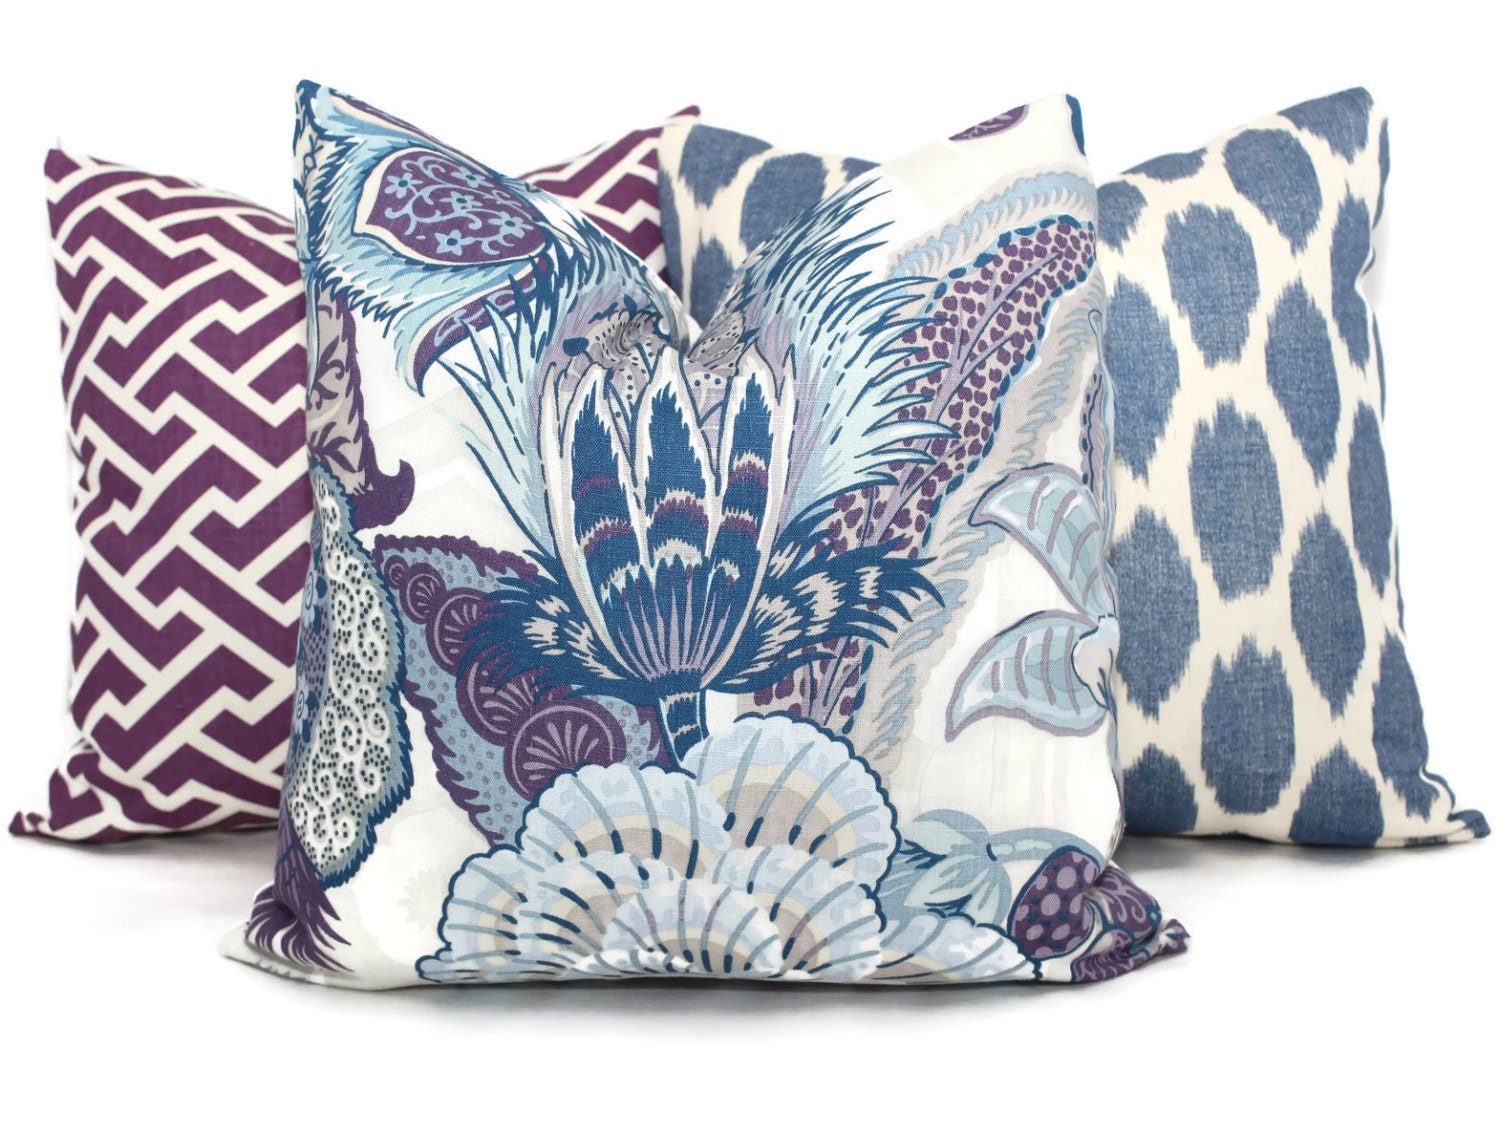 Hyacinth Zanzibar Decorative Pillow Cover 18x18 20x20 22x22